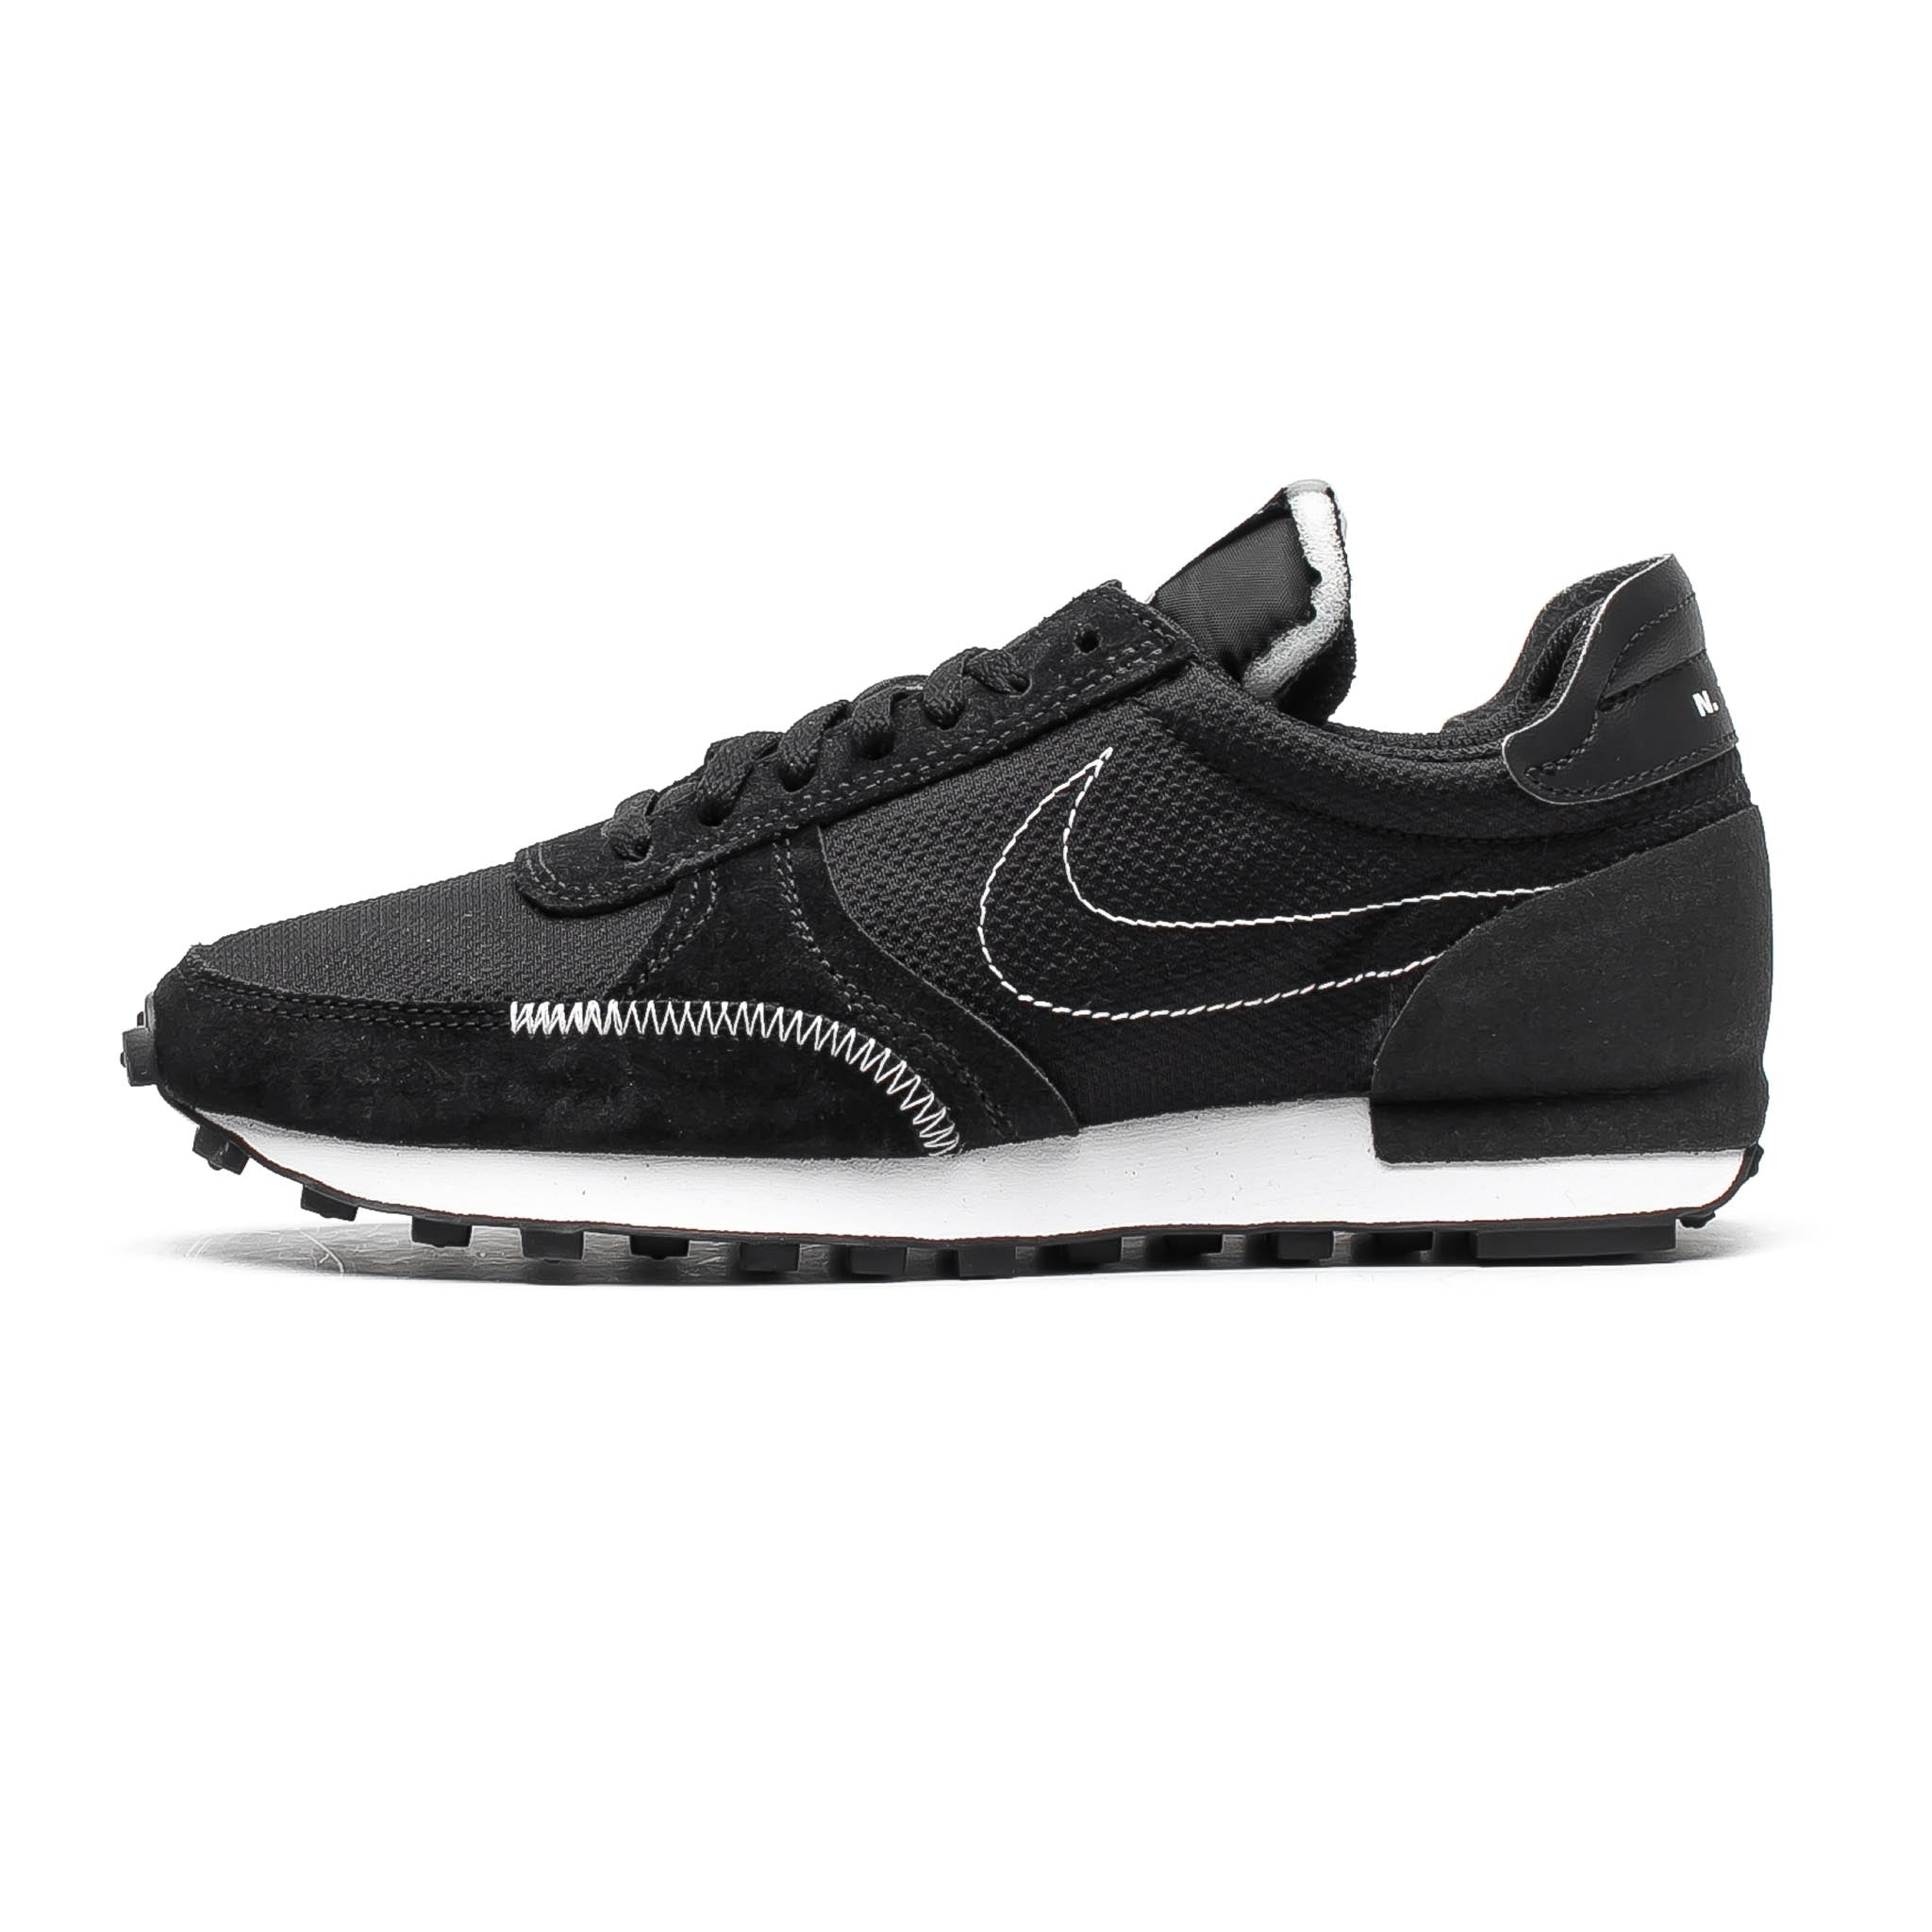 Nike Daybreak-Type 'Black/Grey'